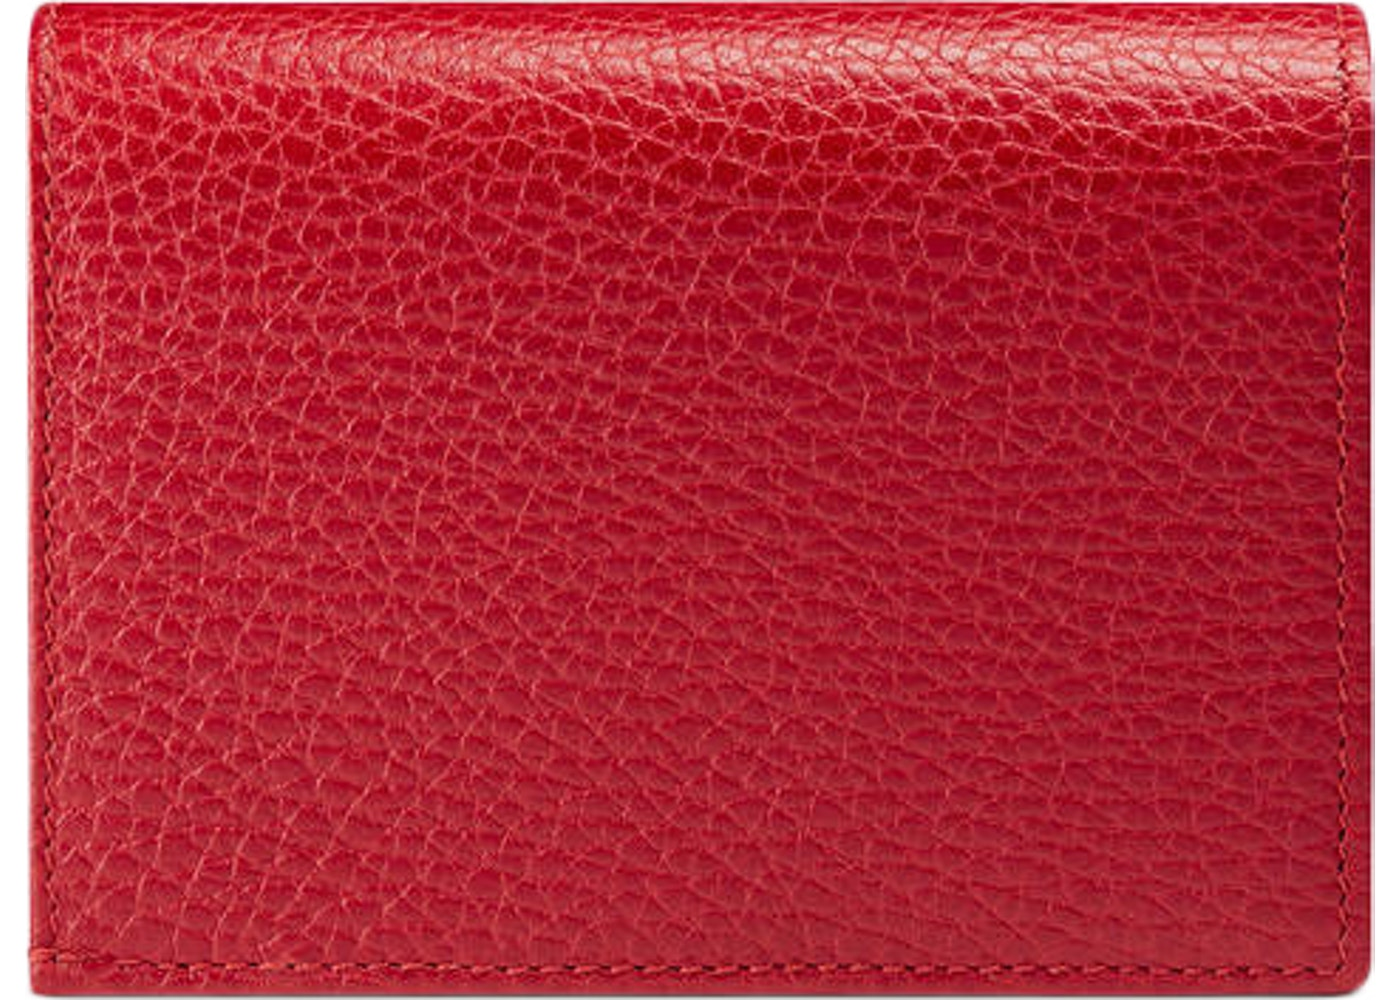 timeless design d94ad a180e Gucci Marmont Flap Card Case Zipped Compartment Hibiscus Red